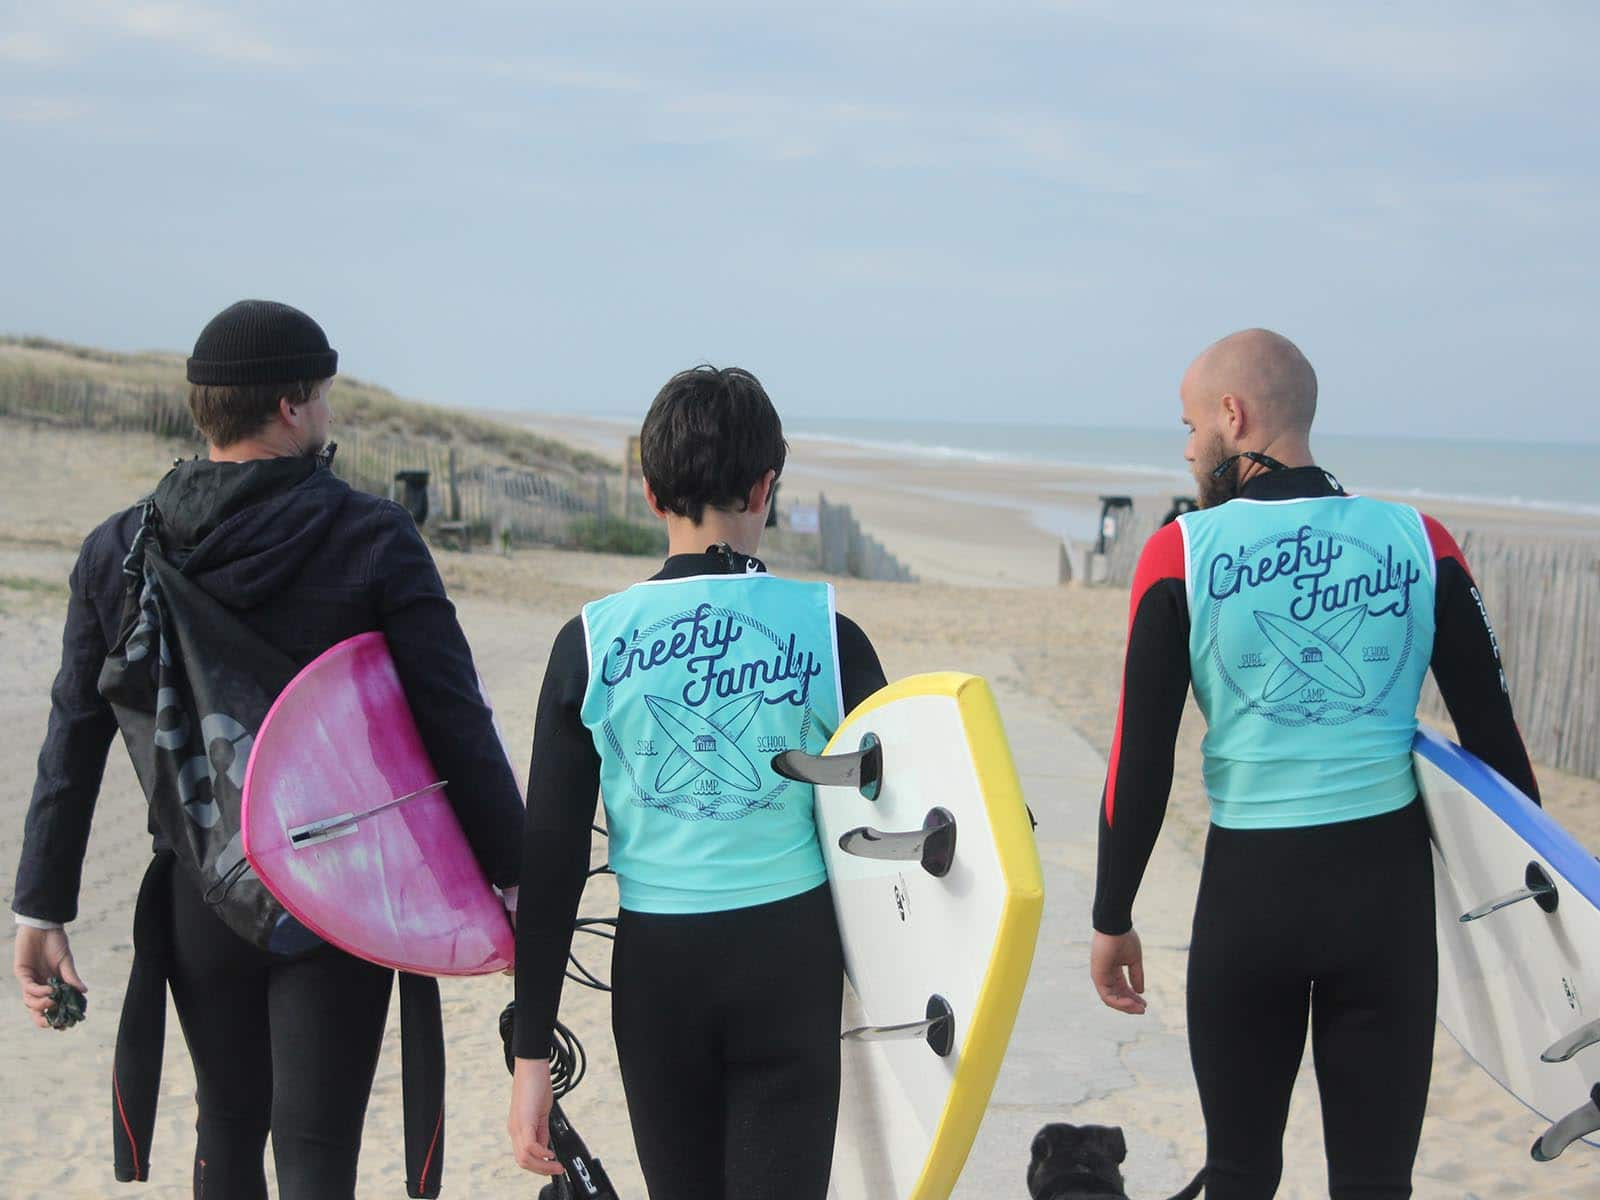 Cheeky-Family-Auberge SurfCamp & School + Lacanau + surfschool-lacanau-surf-ecoledesurf